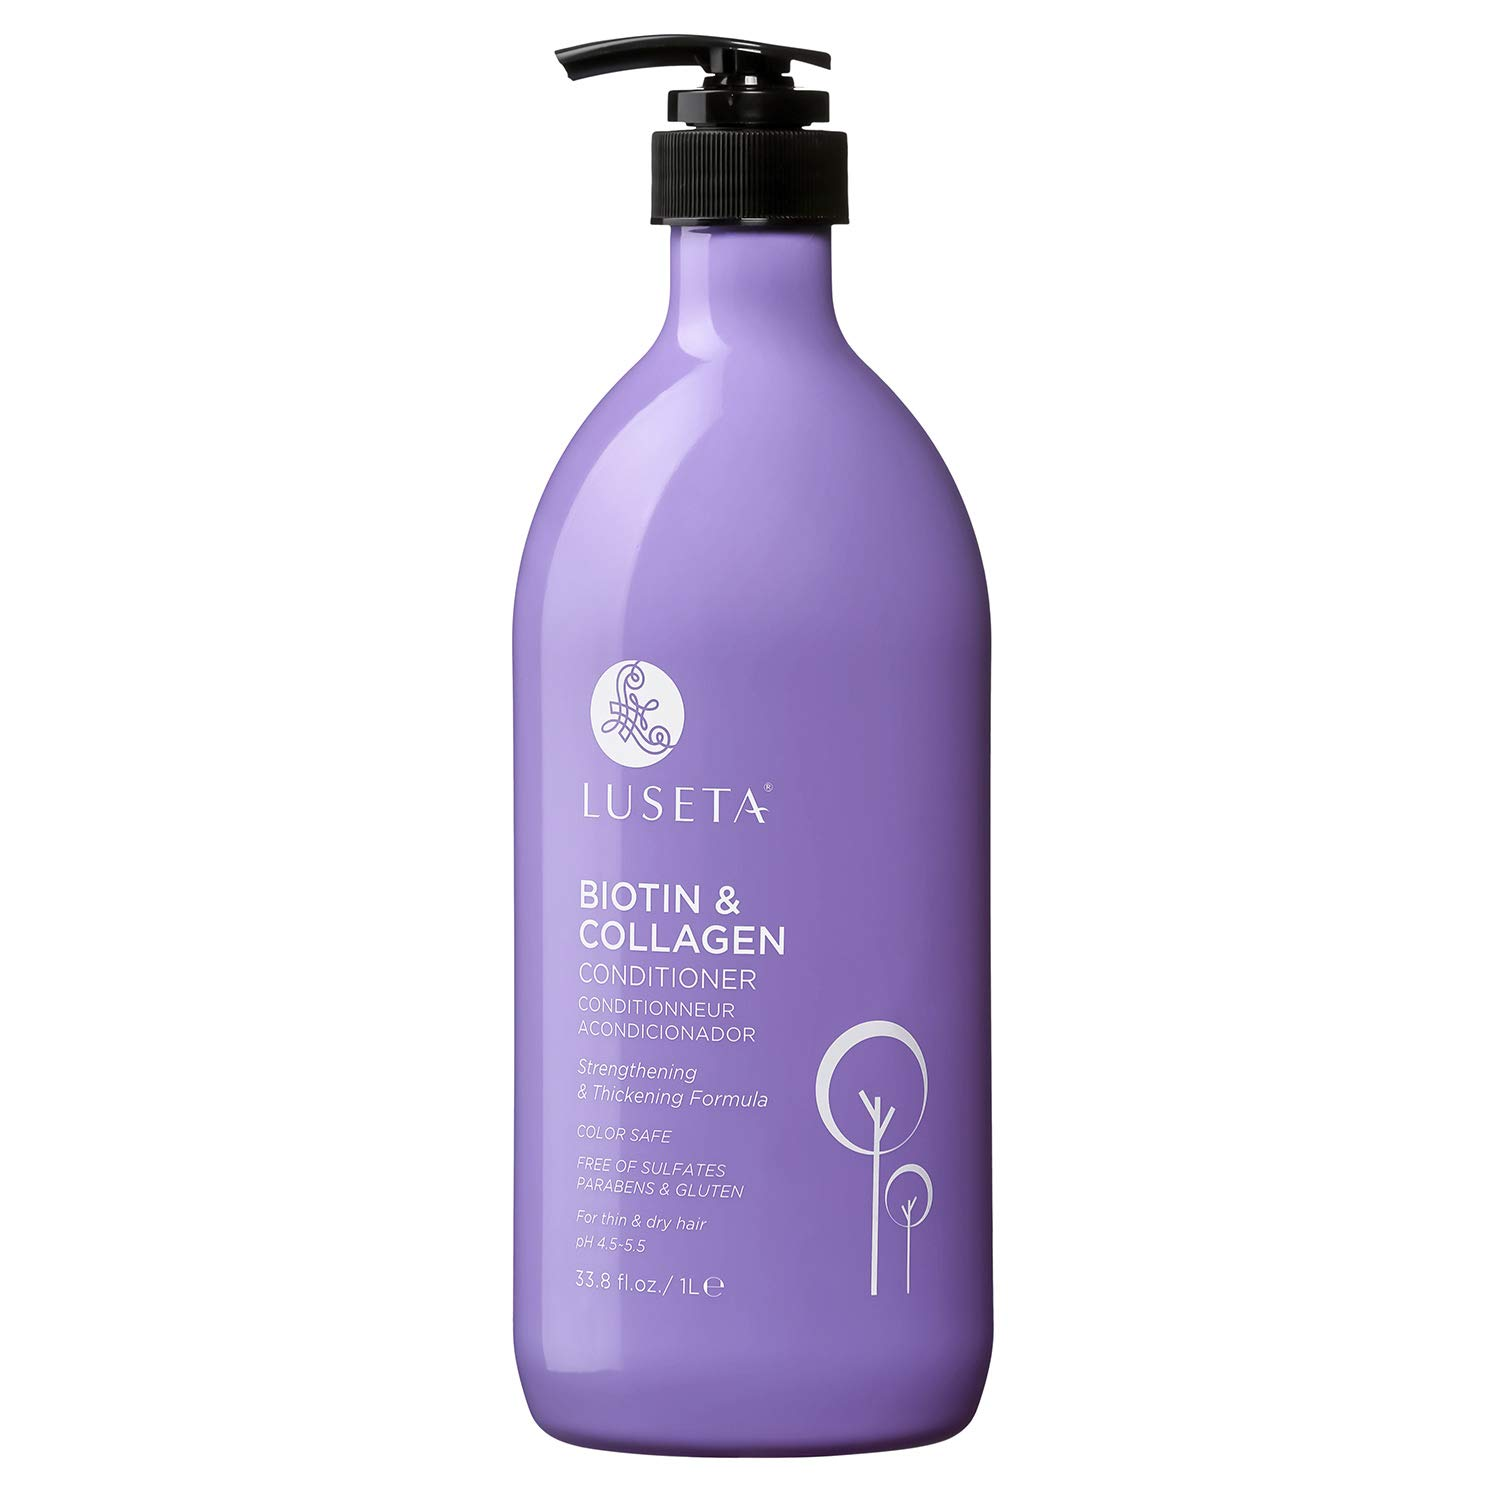 Luseta Biotin & Collagen Conditioner Thickening for Hair Loss & Fast Hair Growth - Infused with Argan Oil to Repair Damaged Dry Hair - Sulfate Free Paraben Free 33.8oz